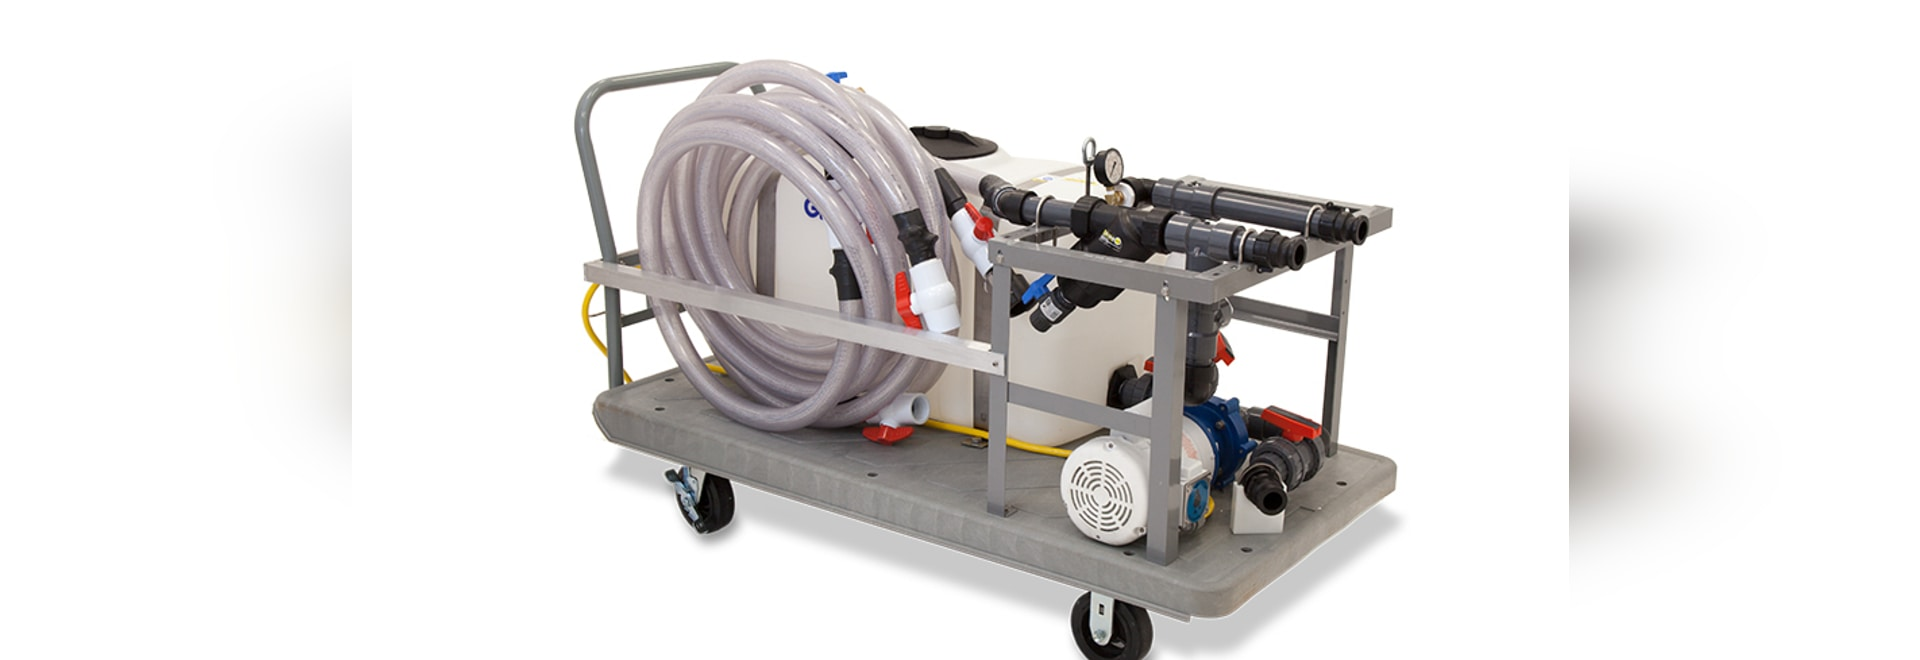 Industrial Descaling System Protects Equipment